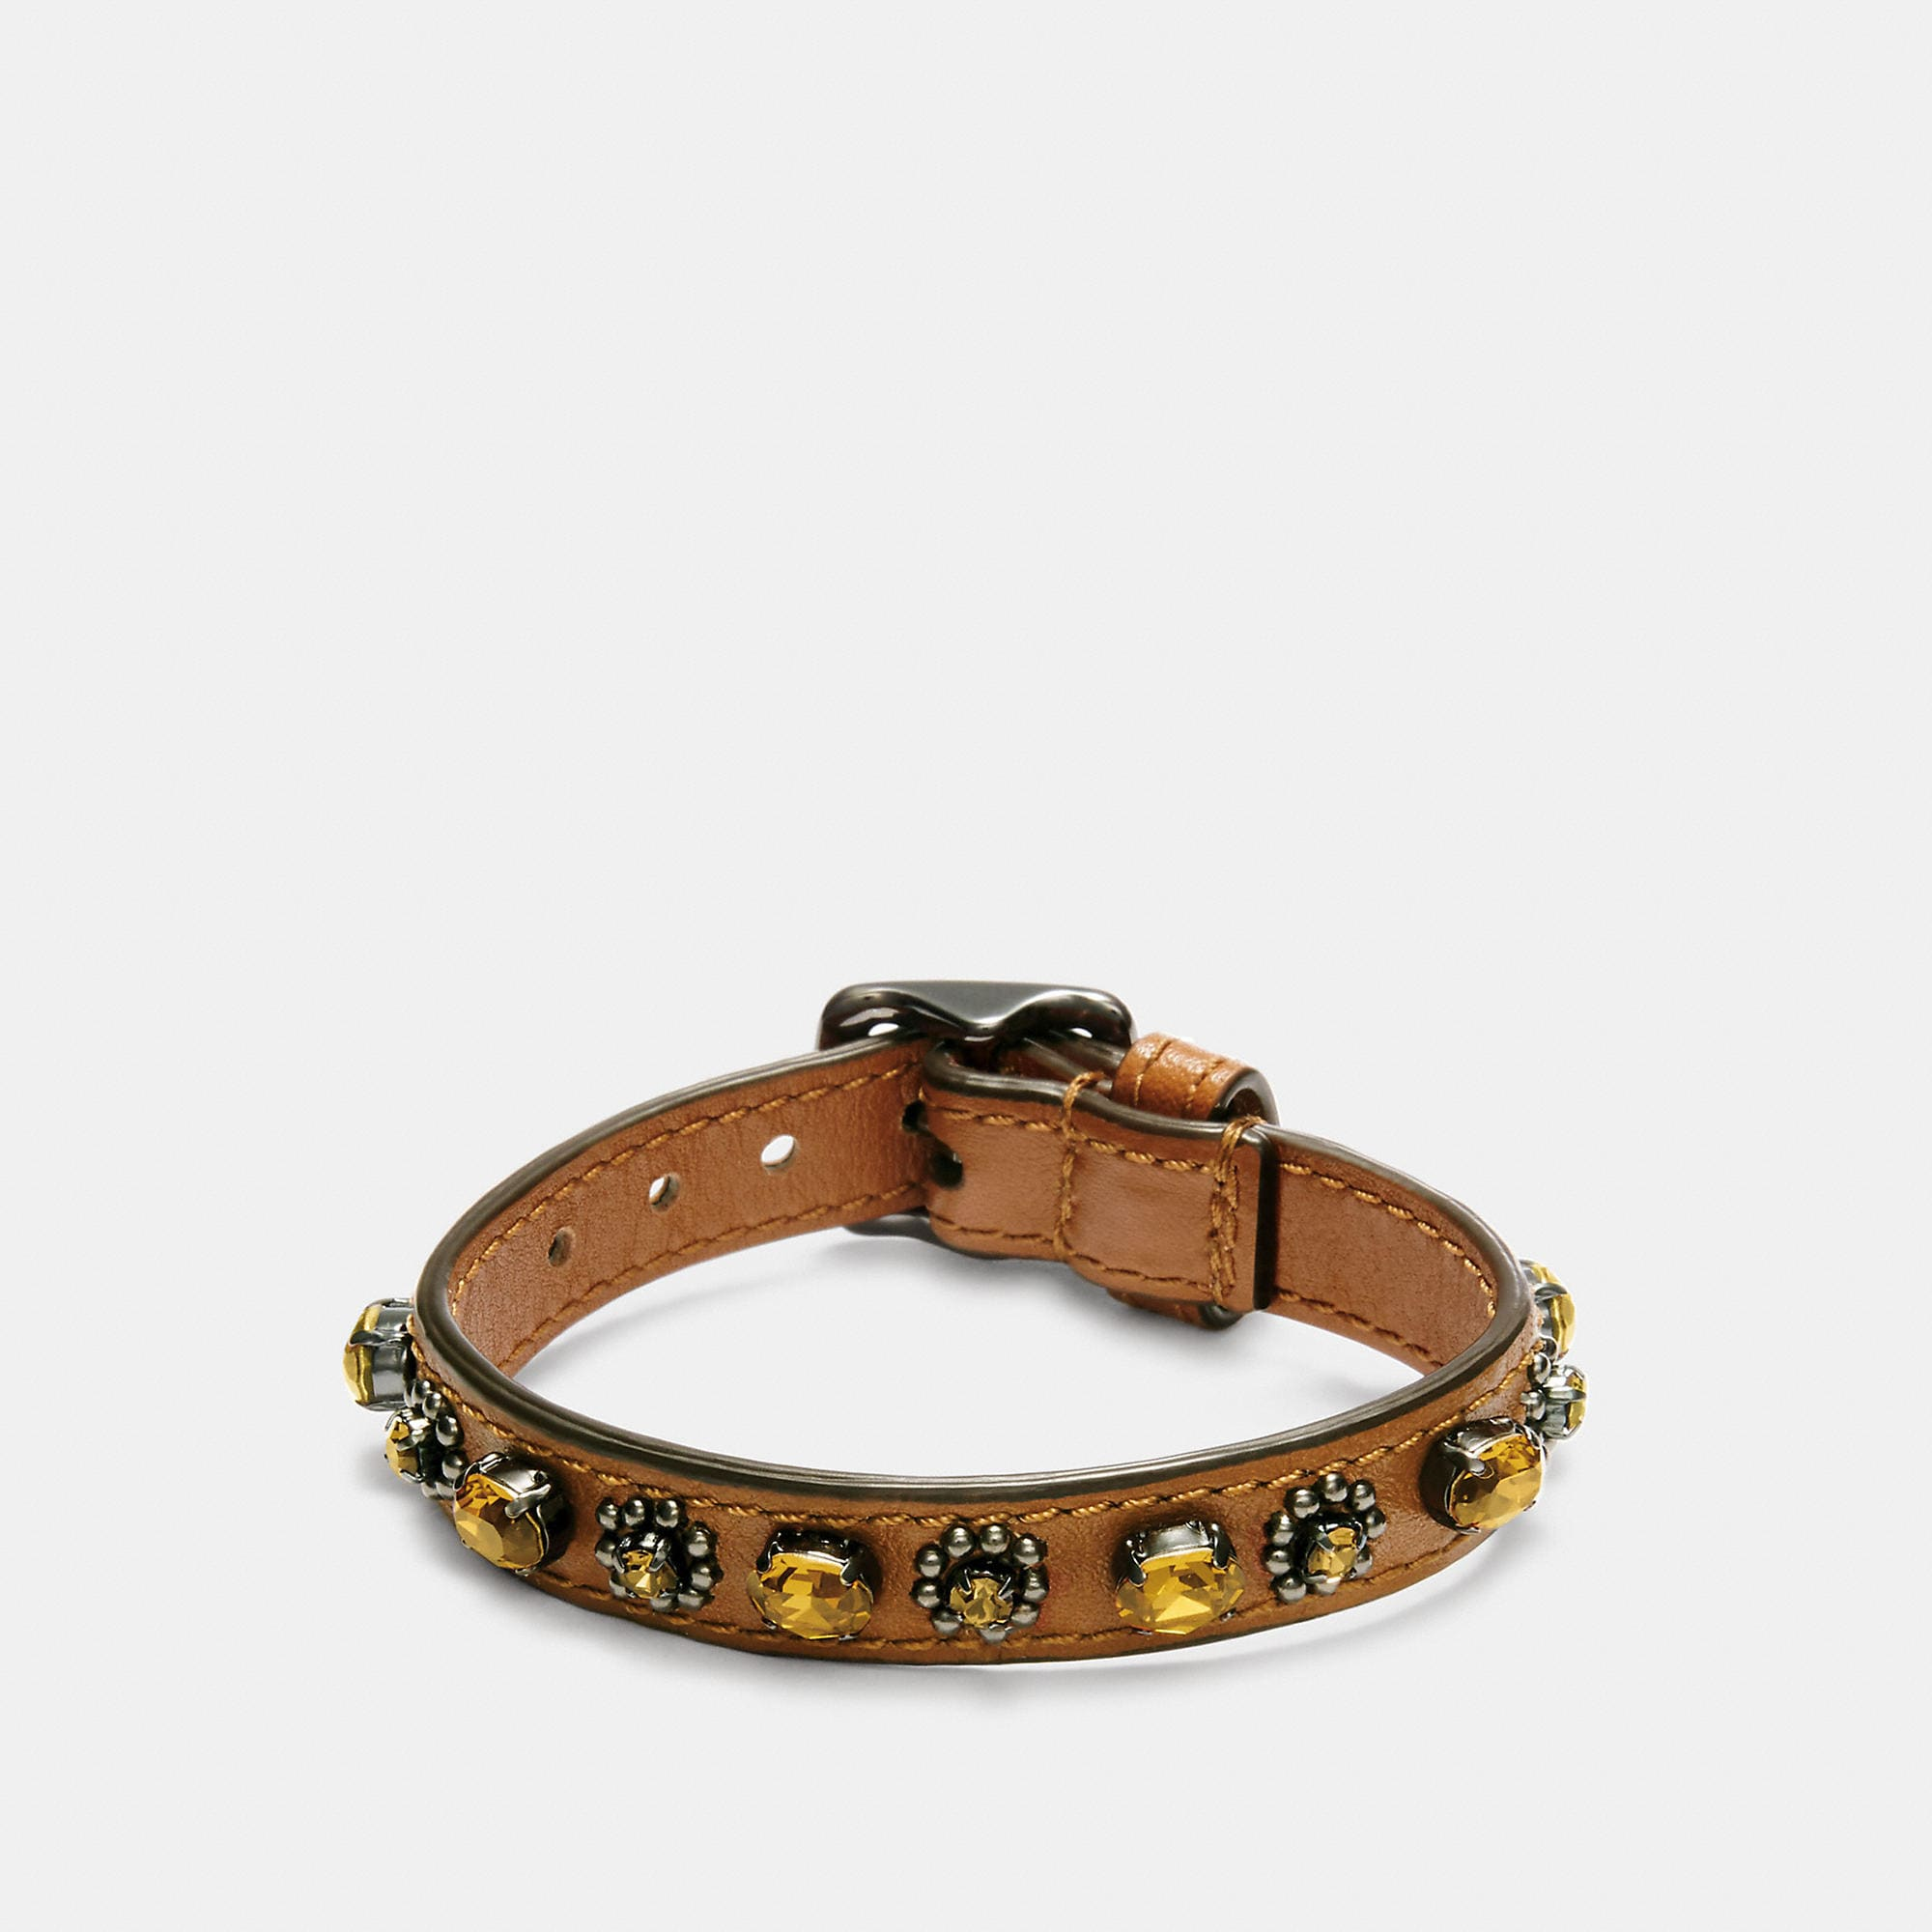 Coach 1941 Medium Leather Oval Crystal Bracelet